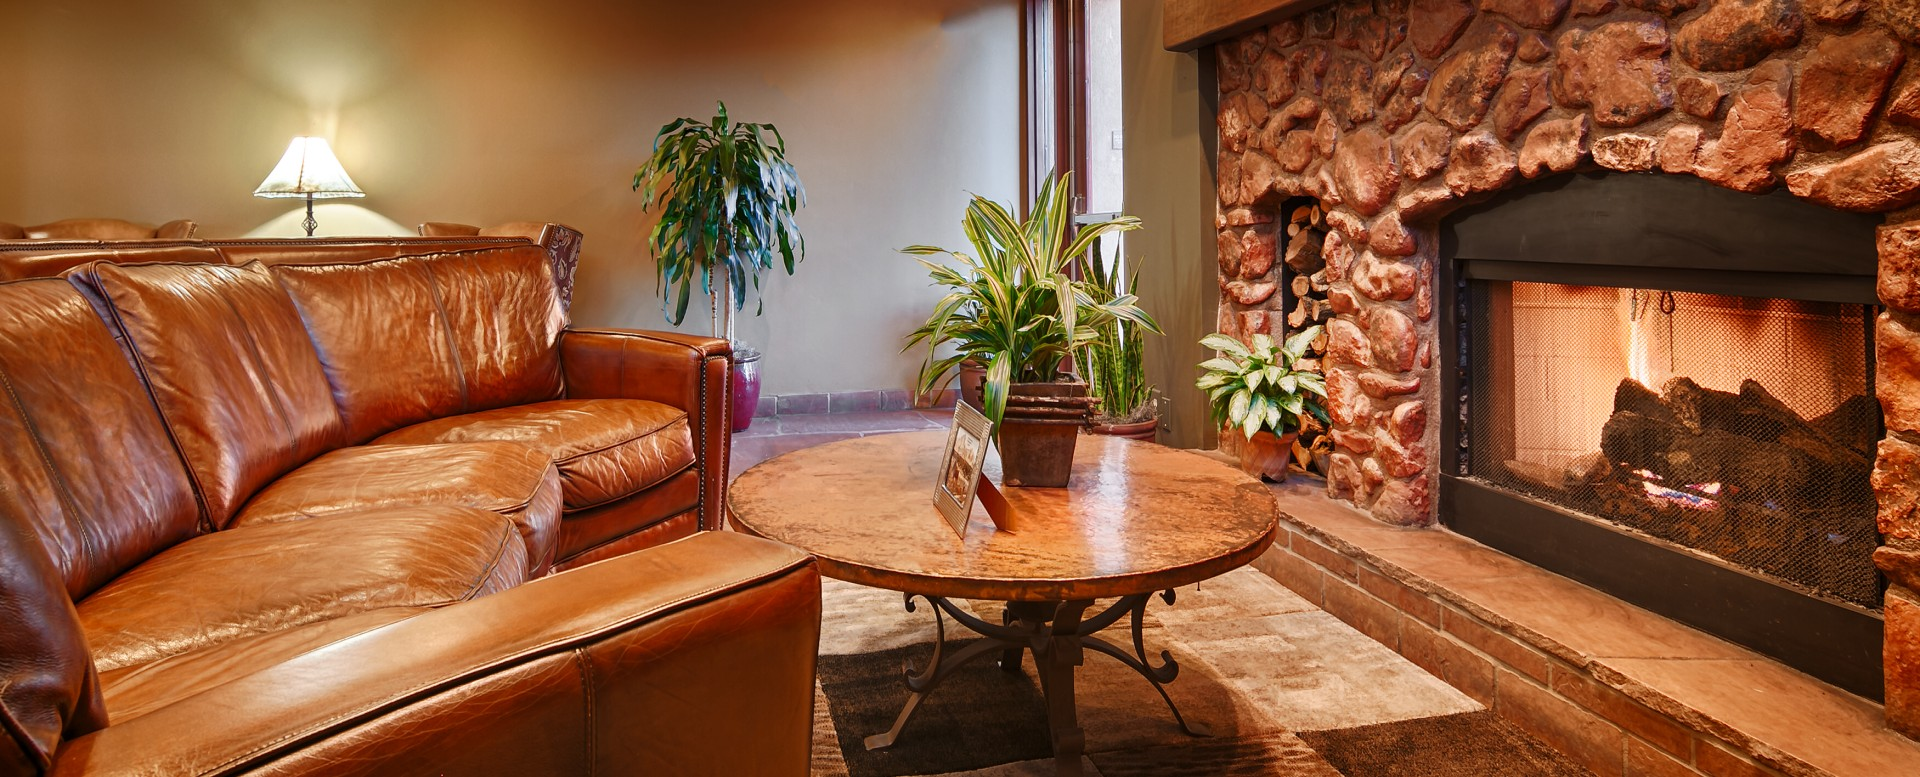 Best Western Plus Inn of Sedona-Lobby Seating and Fireplace